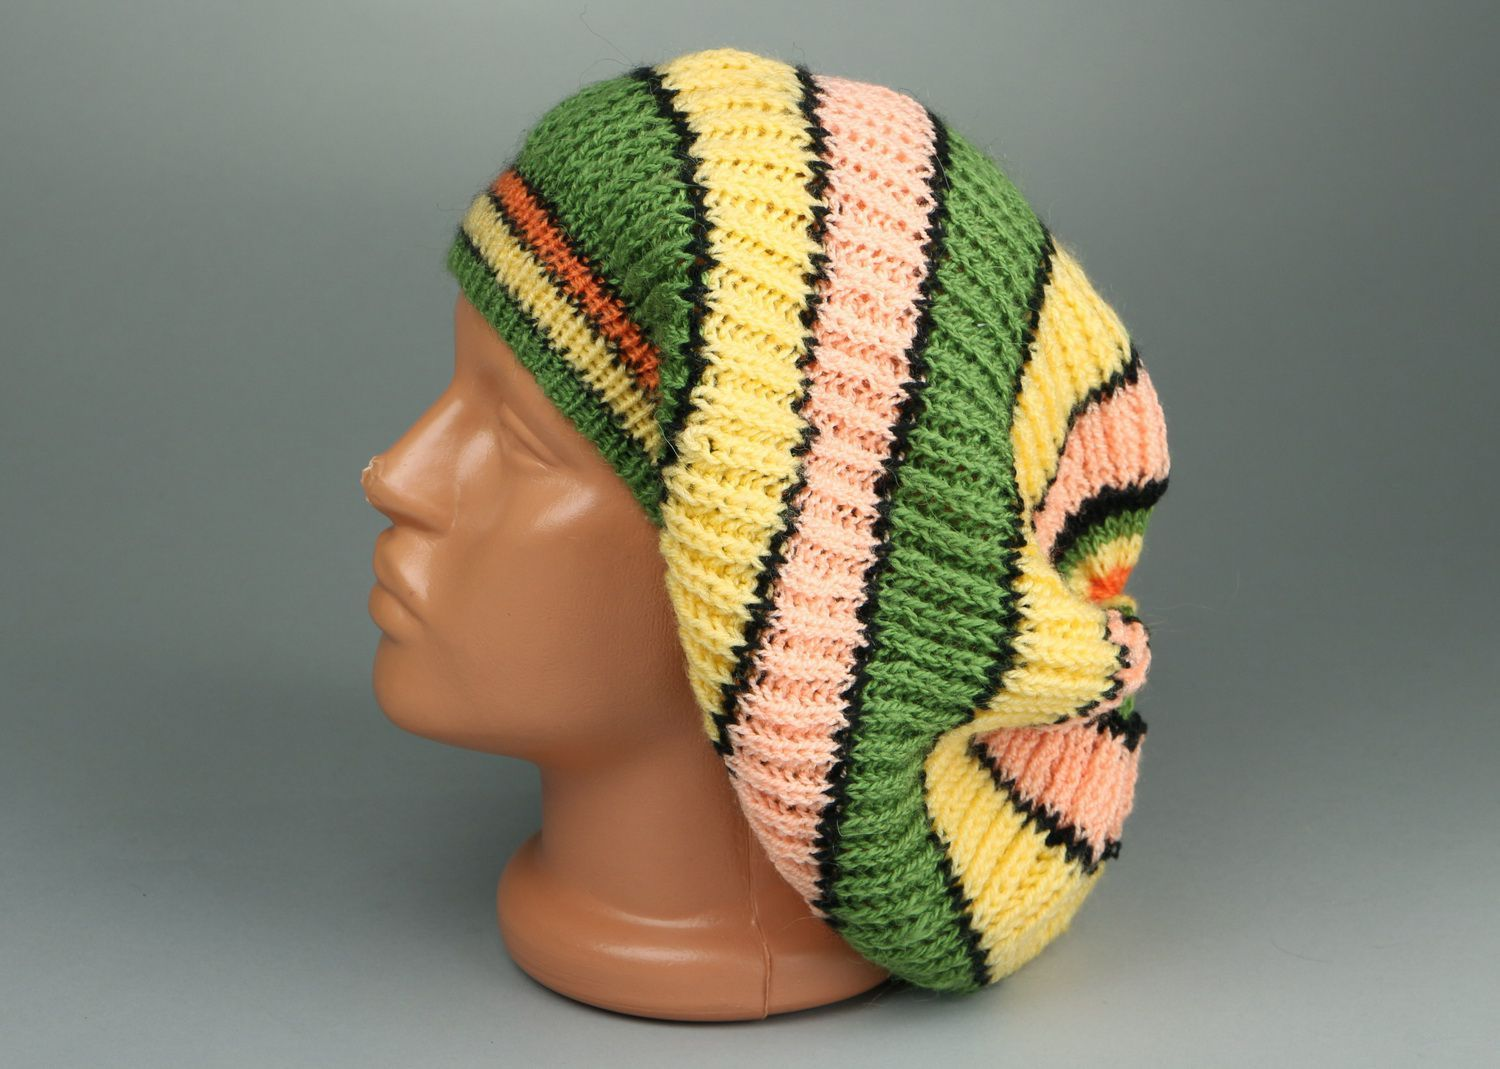 American knitted green & yellow beret photo 4